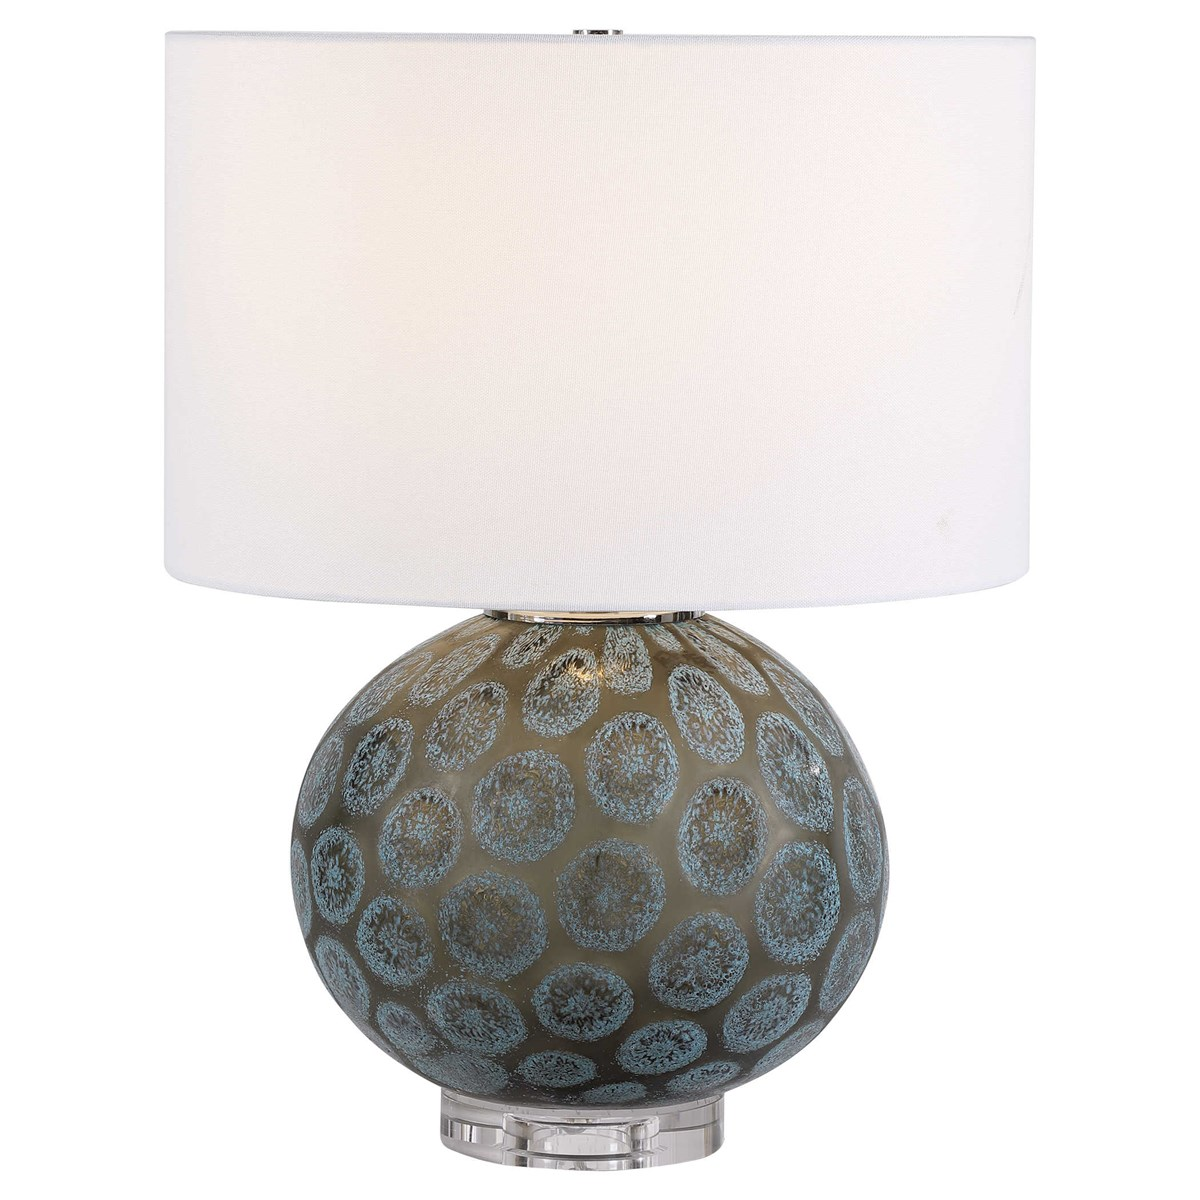 Teal Medallions Lamp-$385.00